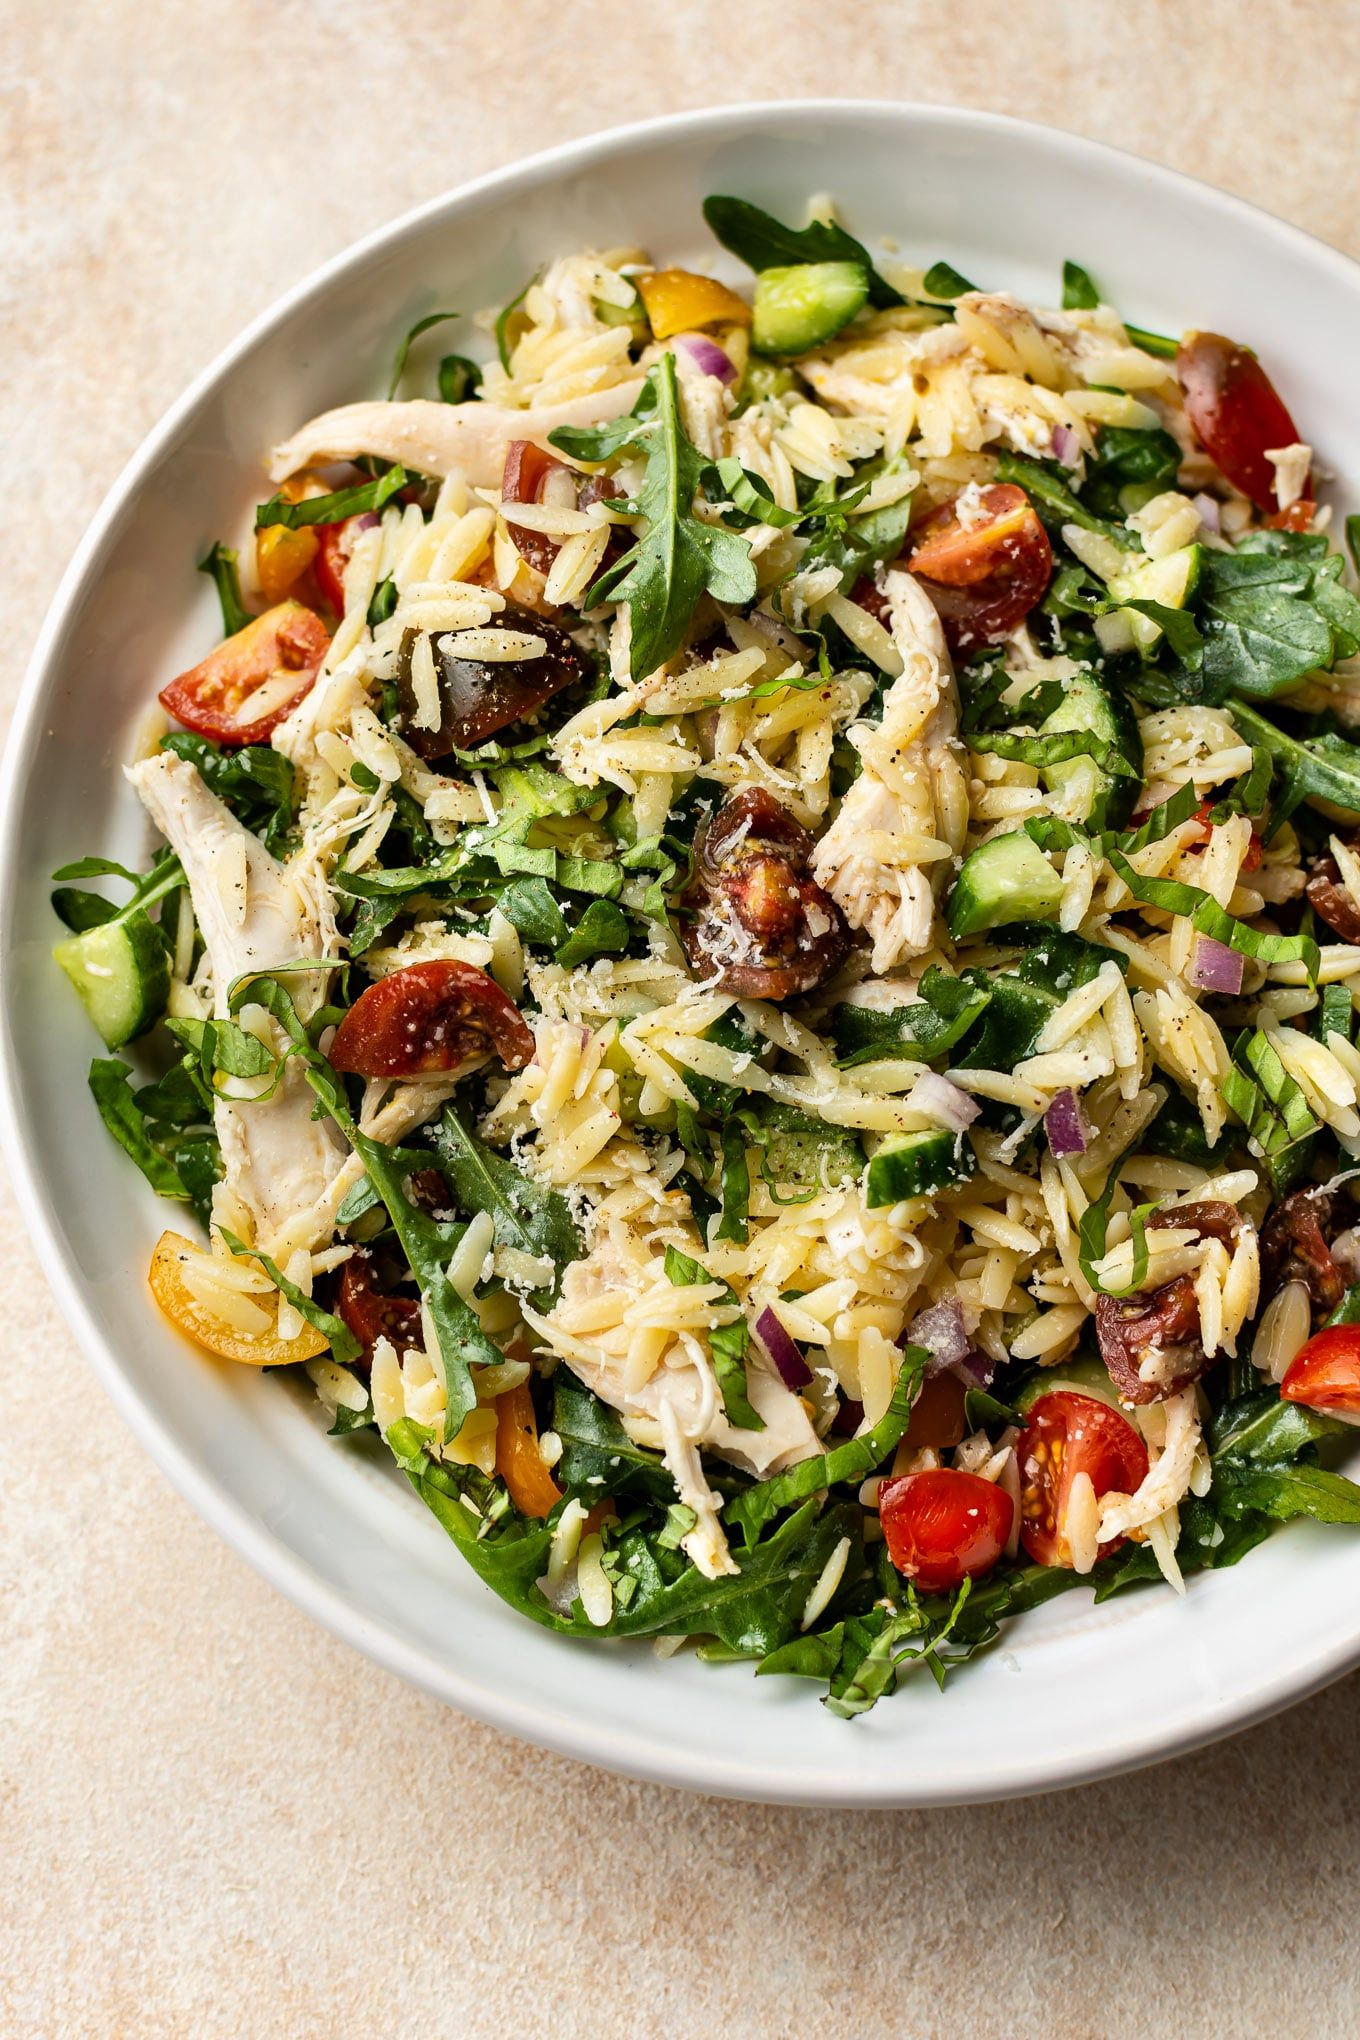 Photo of Lemon Orzo Salad with Chicken